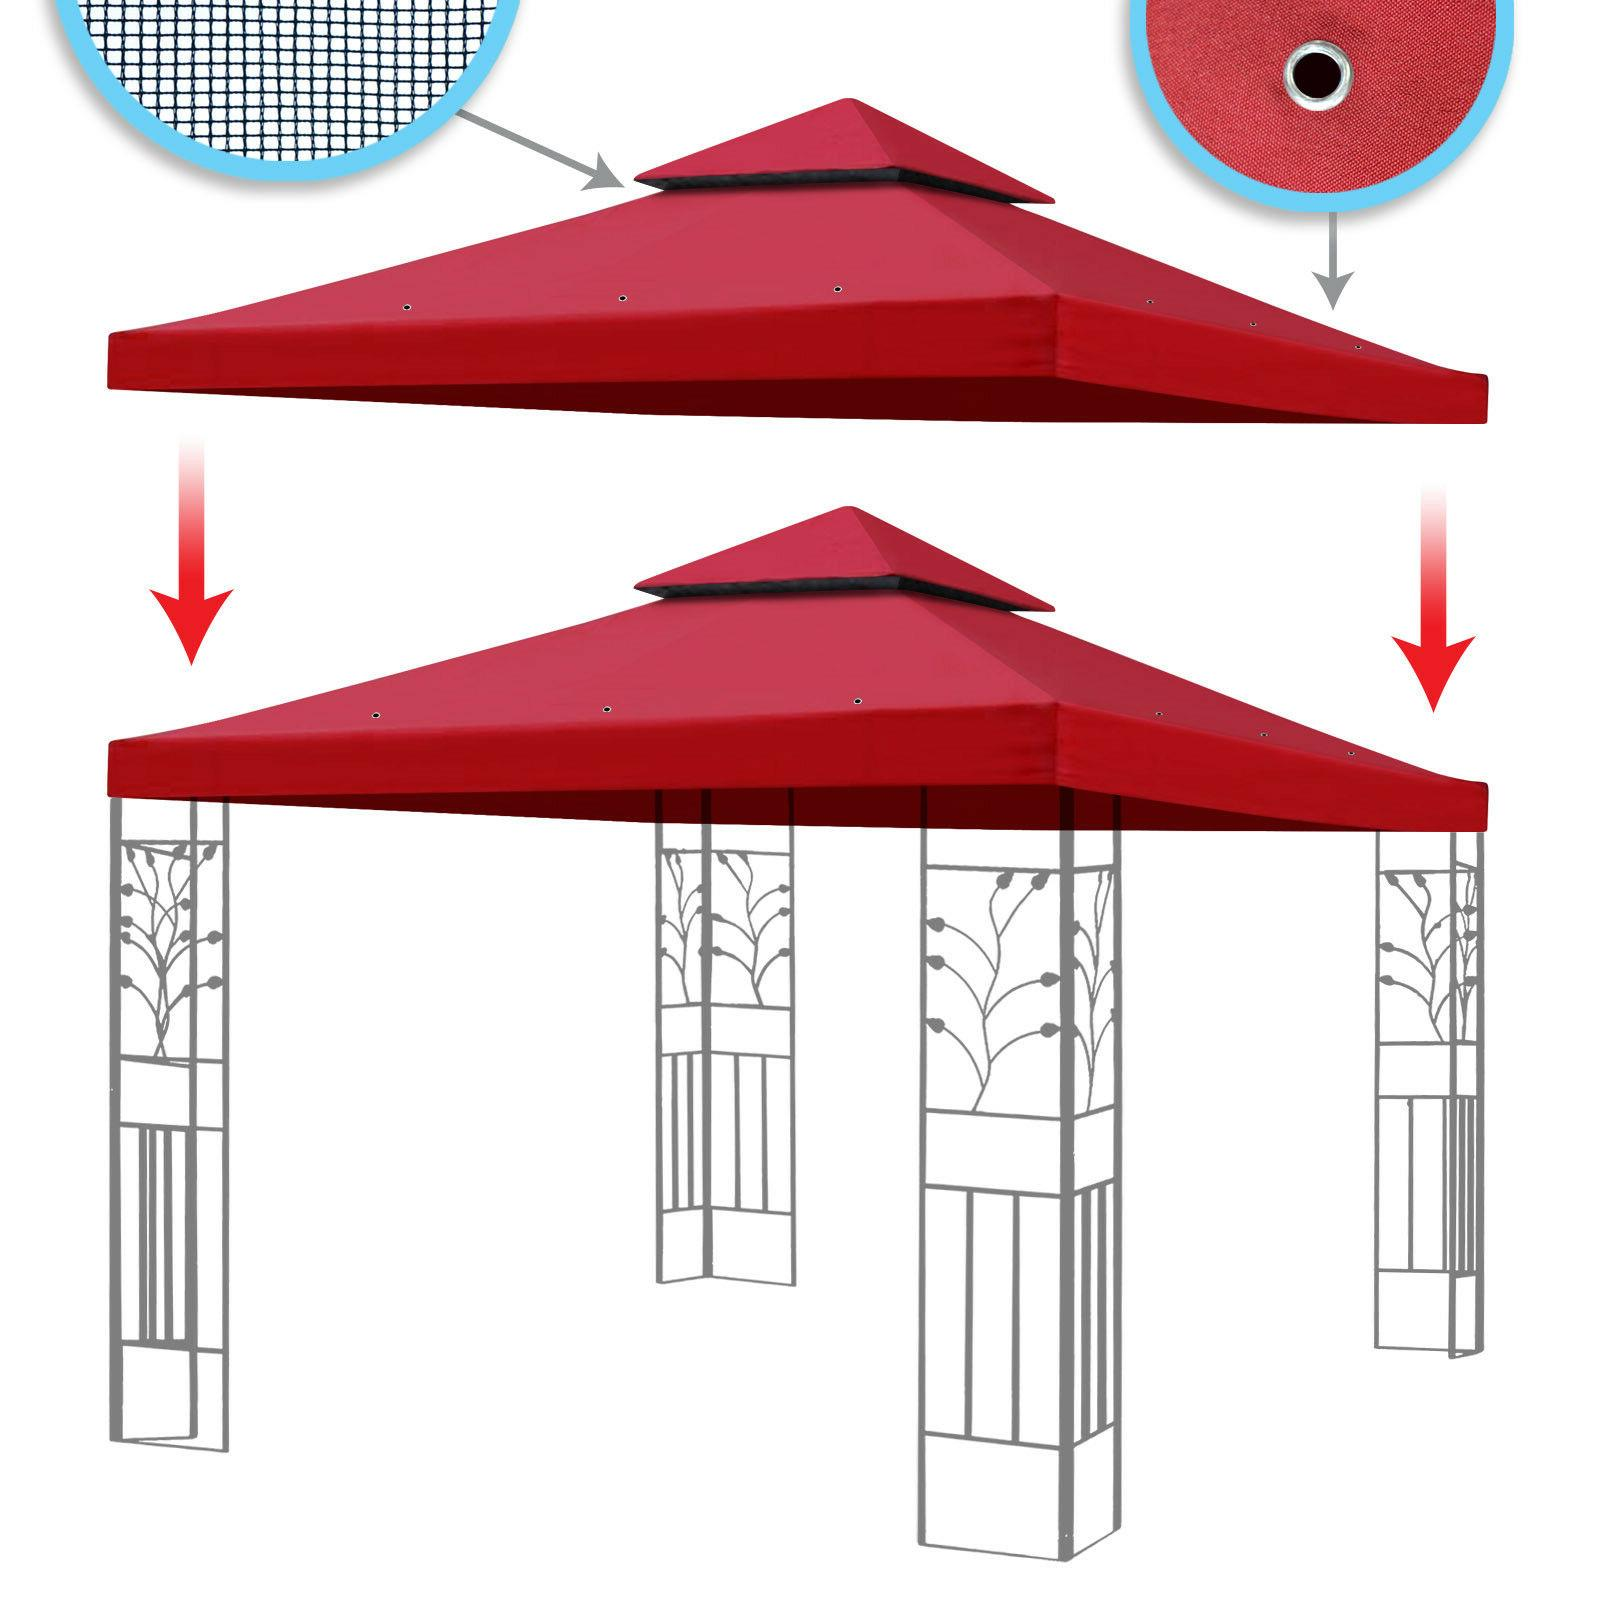 New 10x10' Replacement Canopy Top Sunshade Polyester